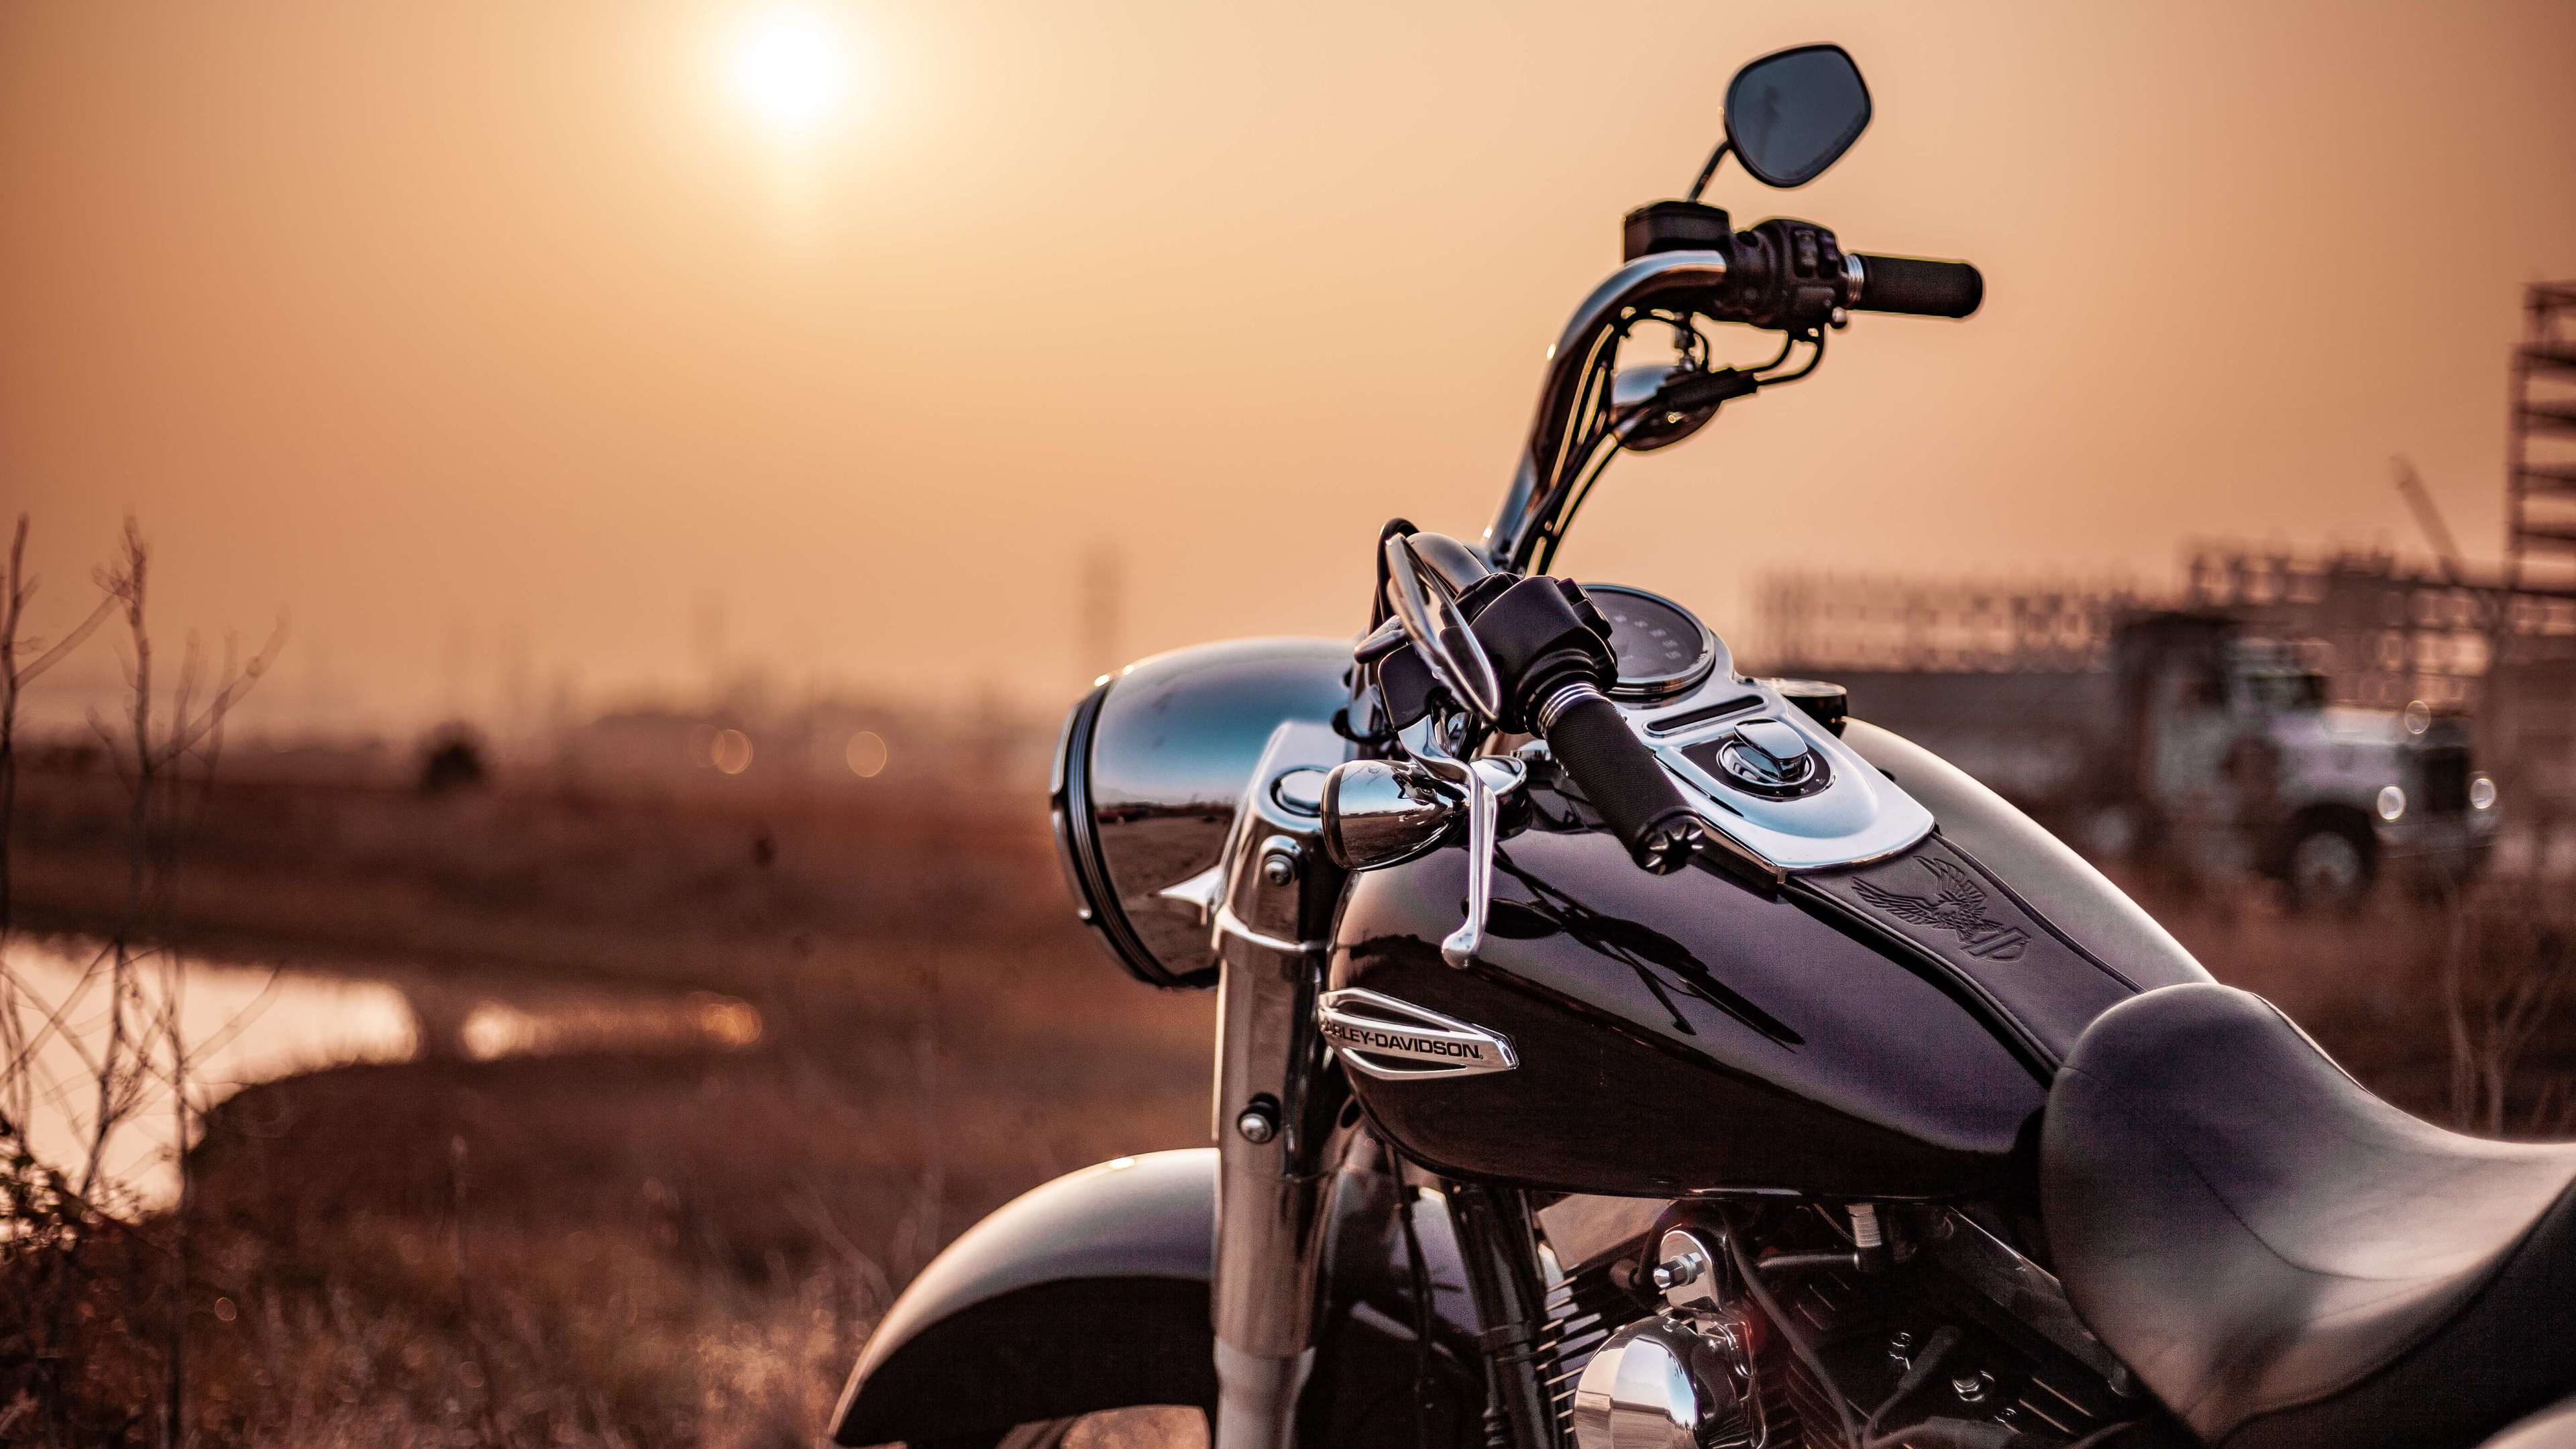 Harley Davidson in India: Hero MotoCorp announced that it has entered into a distribution and licensing agreement with Harley Davidson.